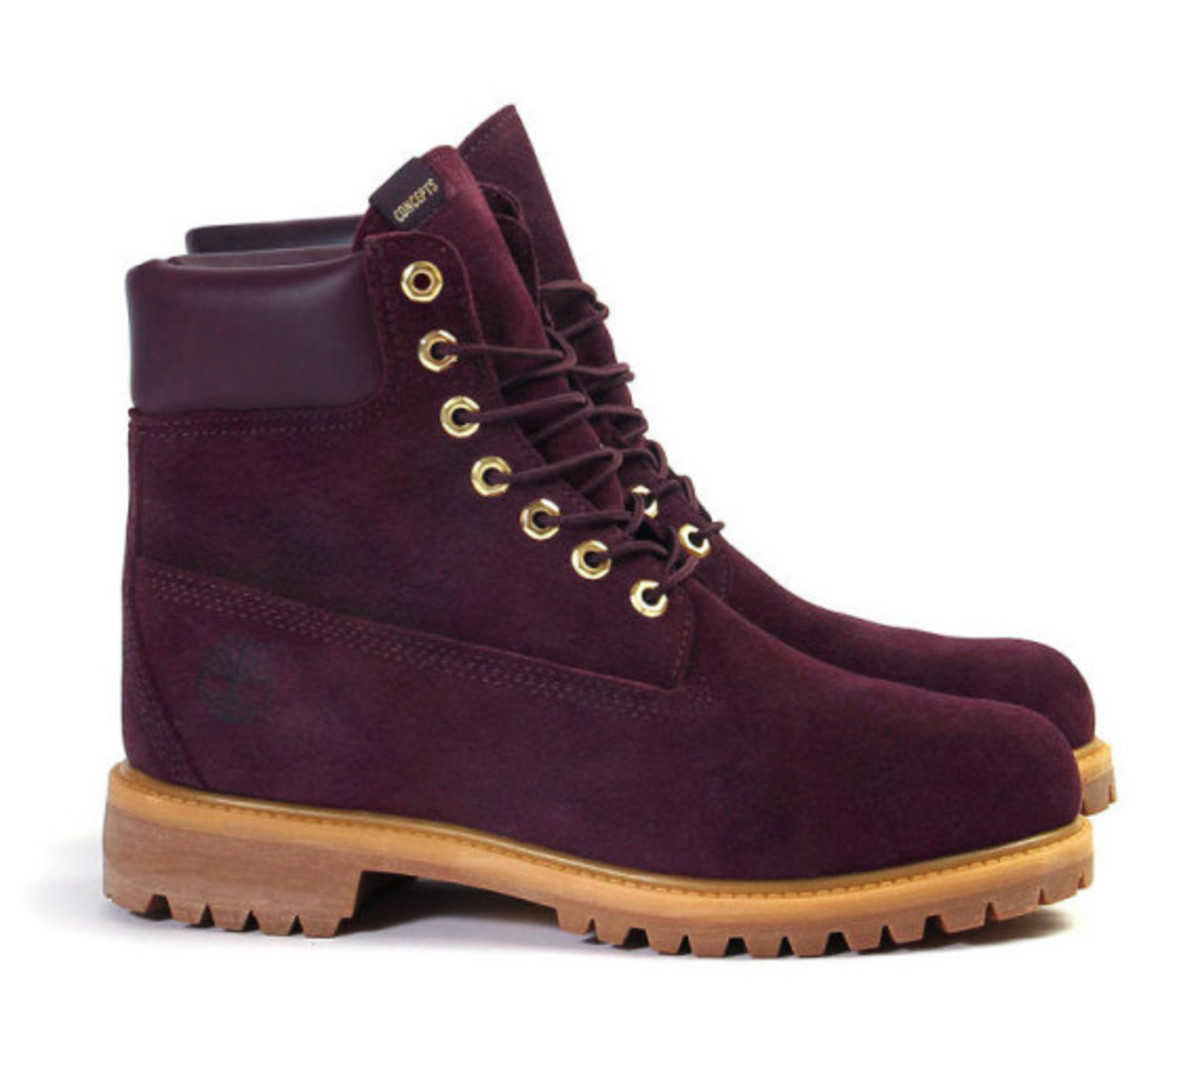 concepts-timberland-6-inch-boot-02